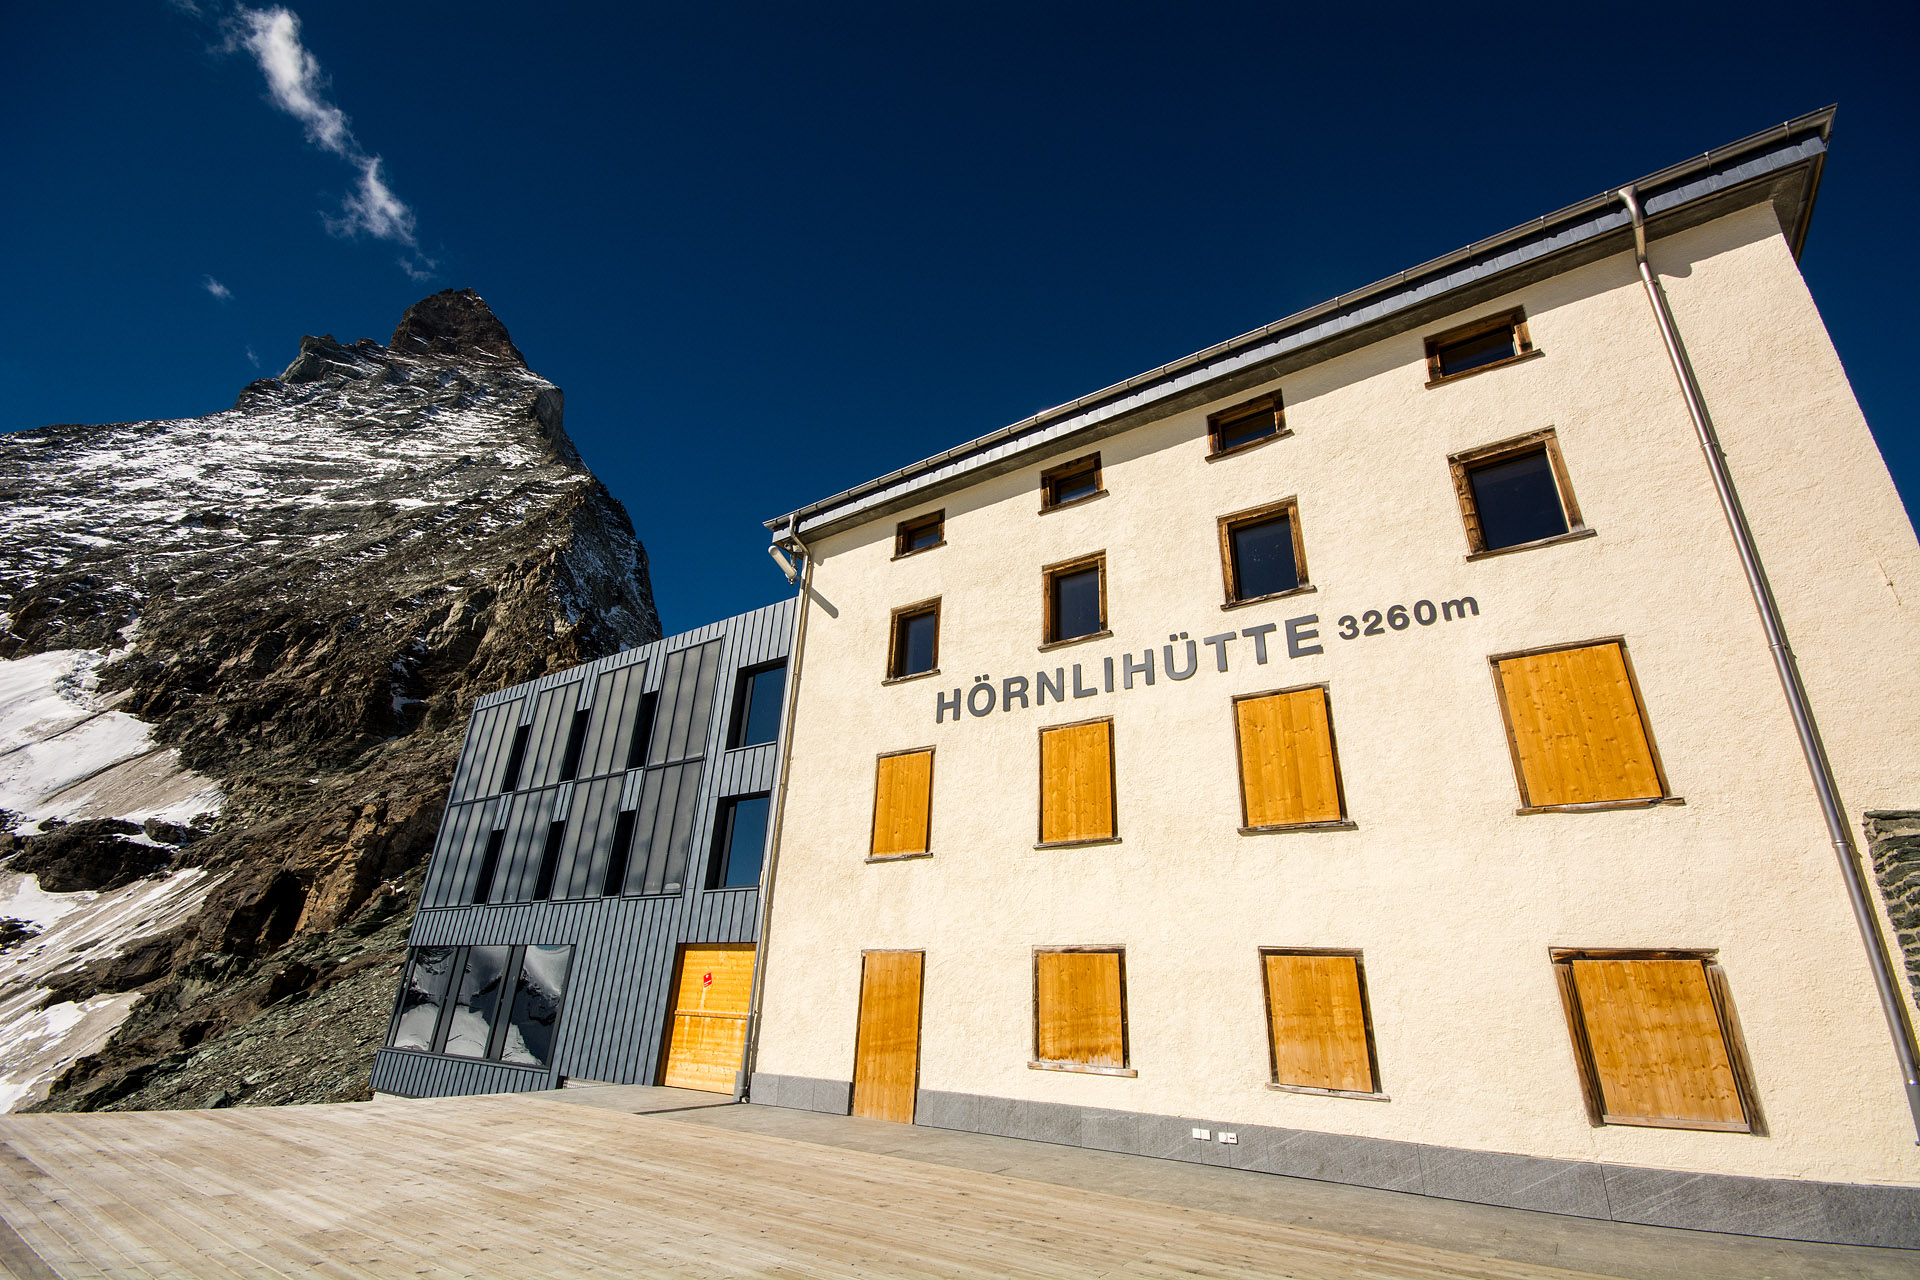 Hornlihutte (Matterhorn Base Camp)